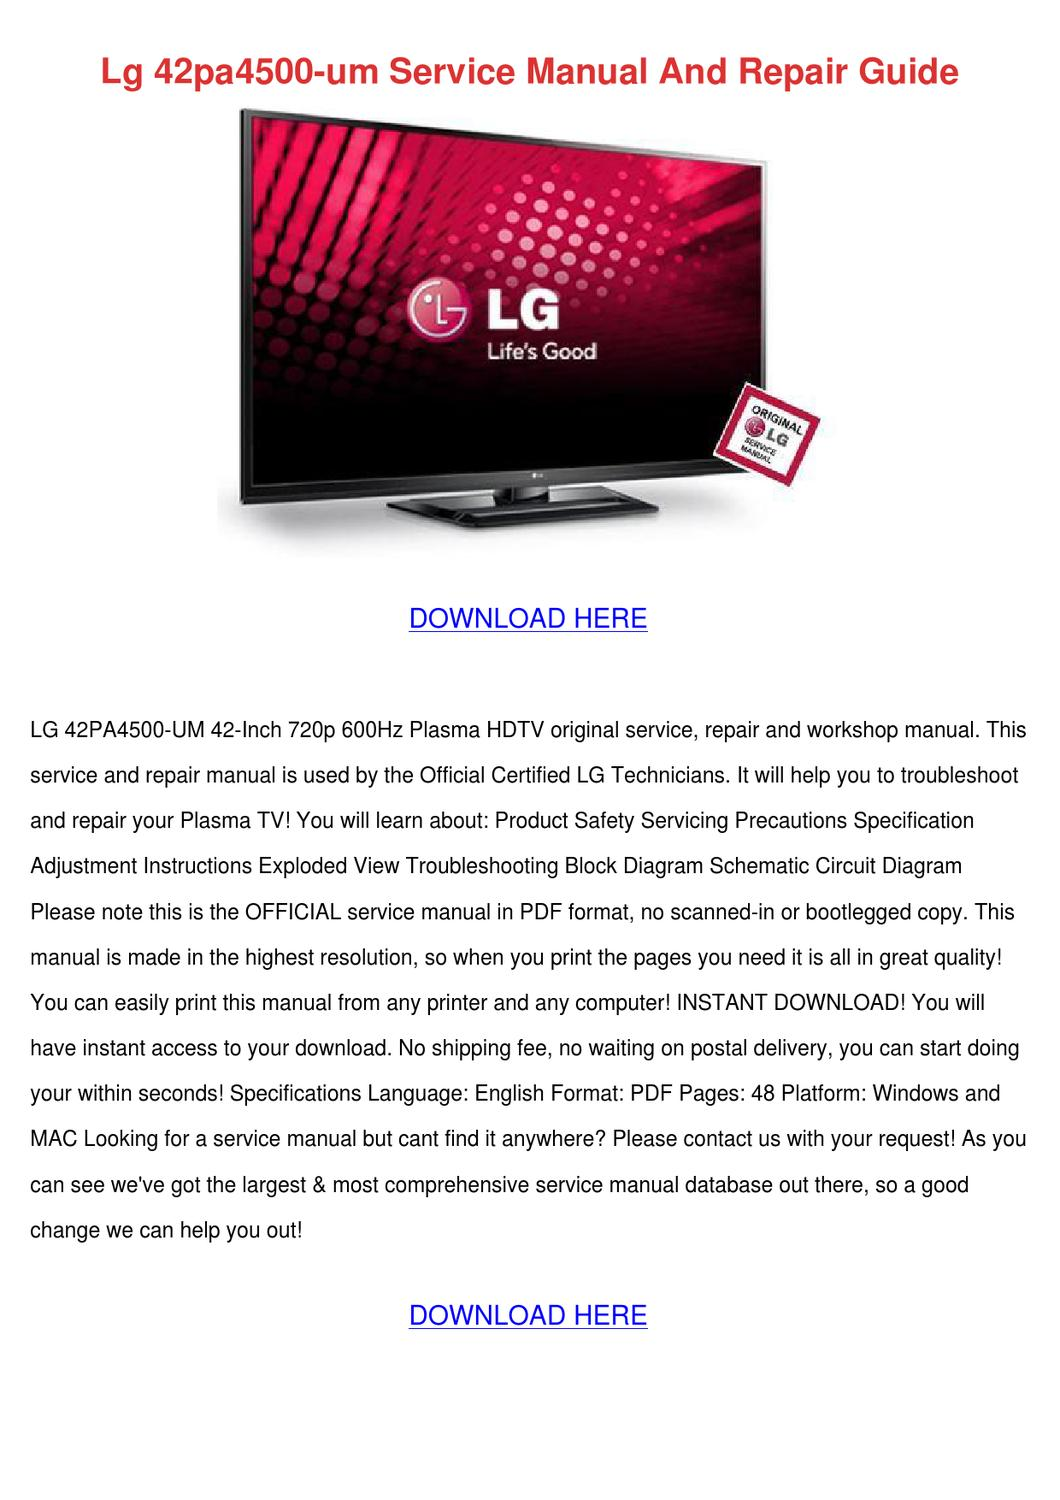 Lg 42pa4500 Um Service Manual And Repair Guid by MistyMcneill - issuu